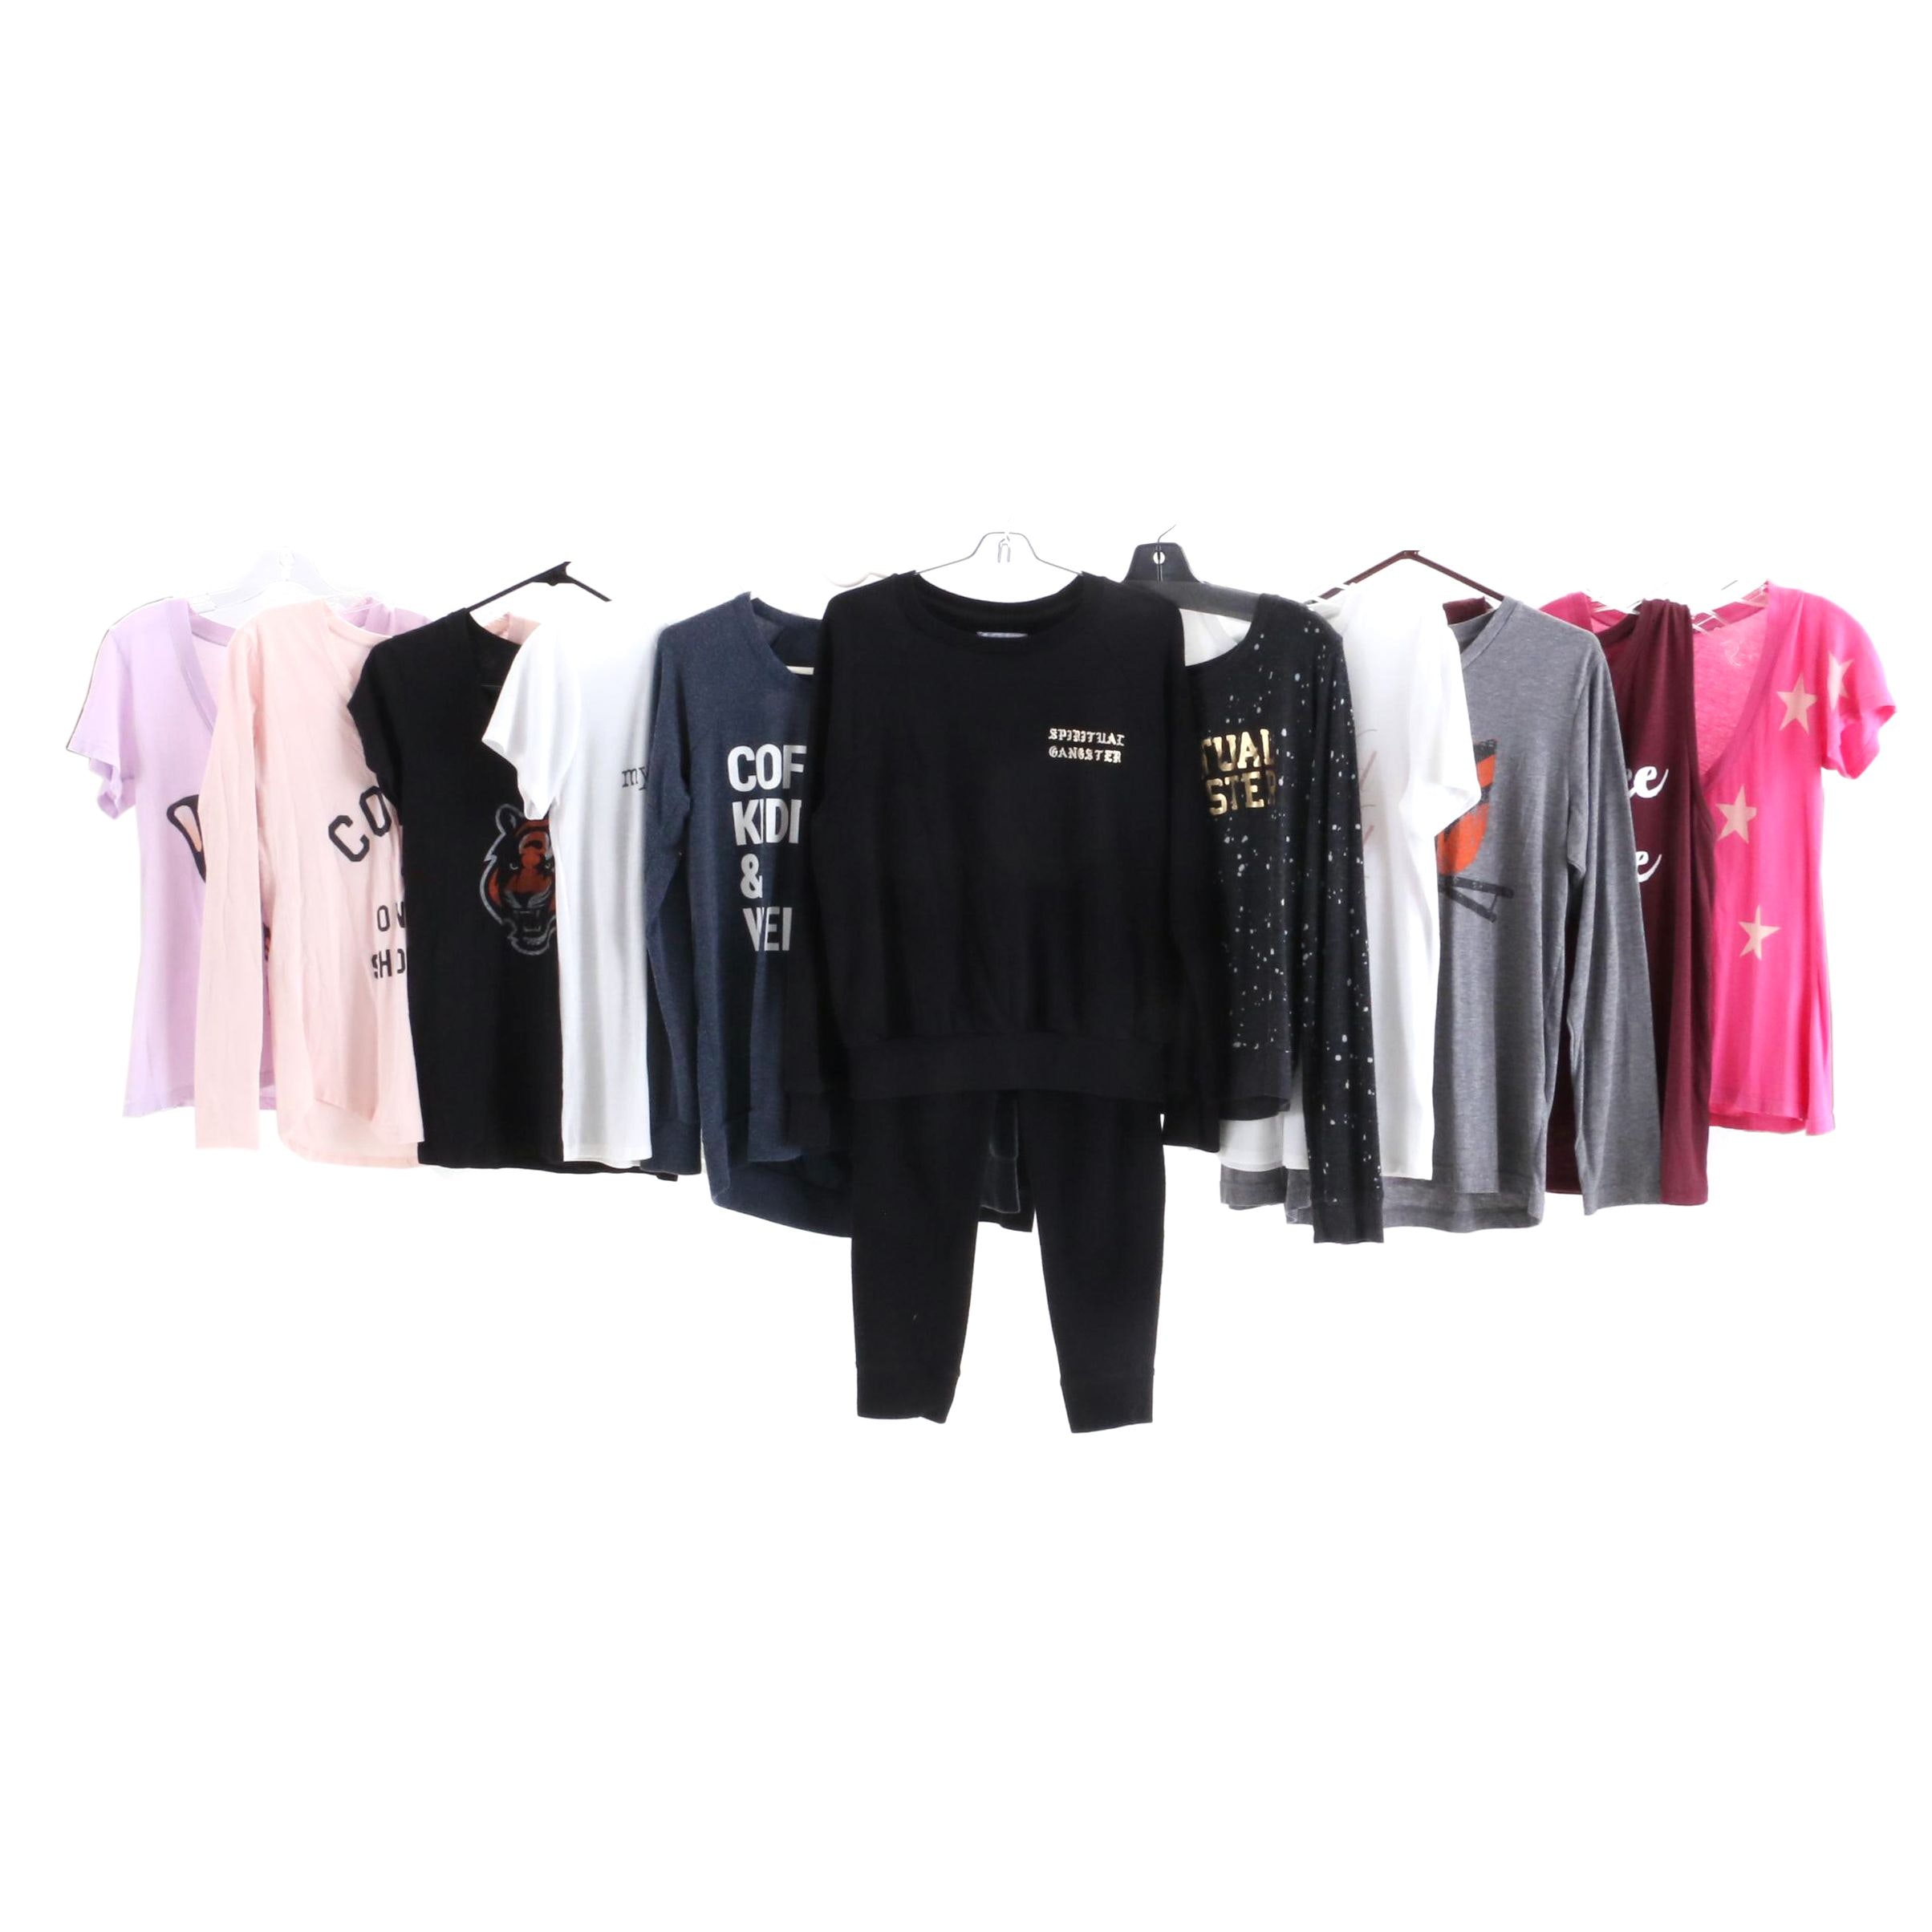 Women's T-shirts and Sweaters including Wildfox